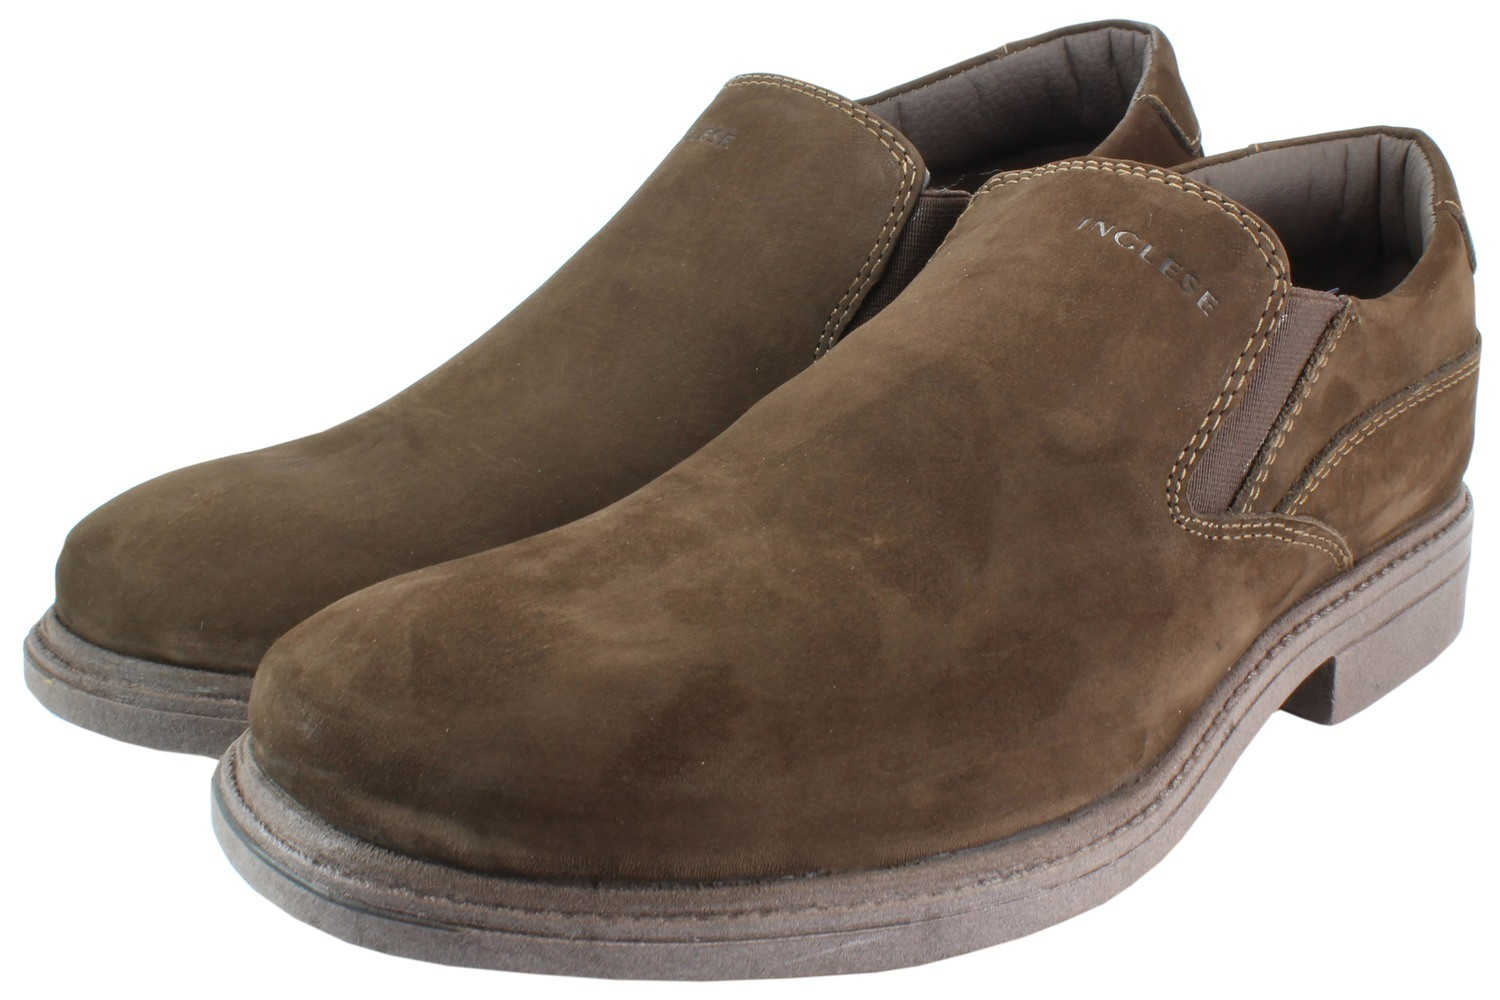 Mens Shoes Genuine Nubuck Leather Brown - SUGGESTED RETAIL PRICE $45.00 - WHOLESALE PRICE $9 - Minimum purchase 11pairs